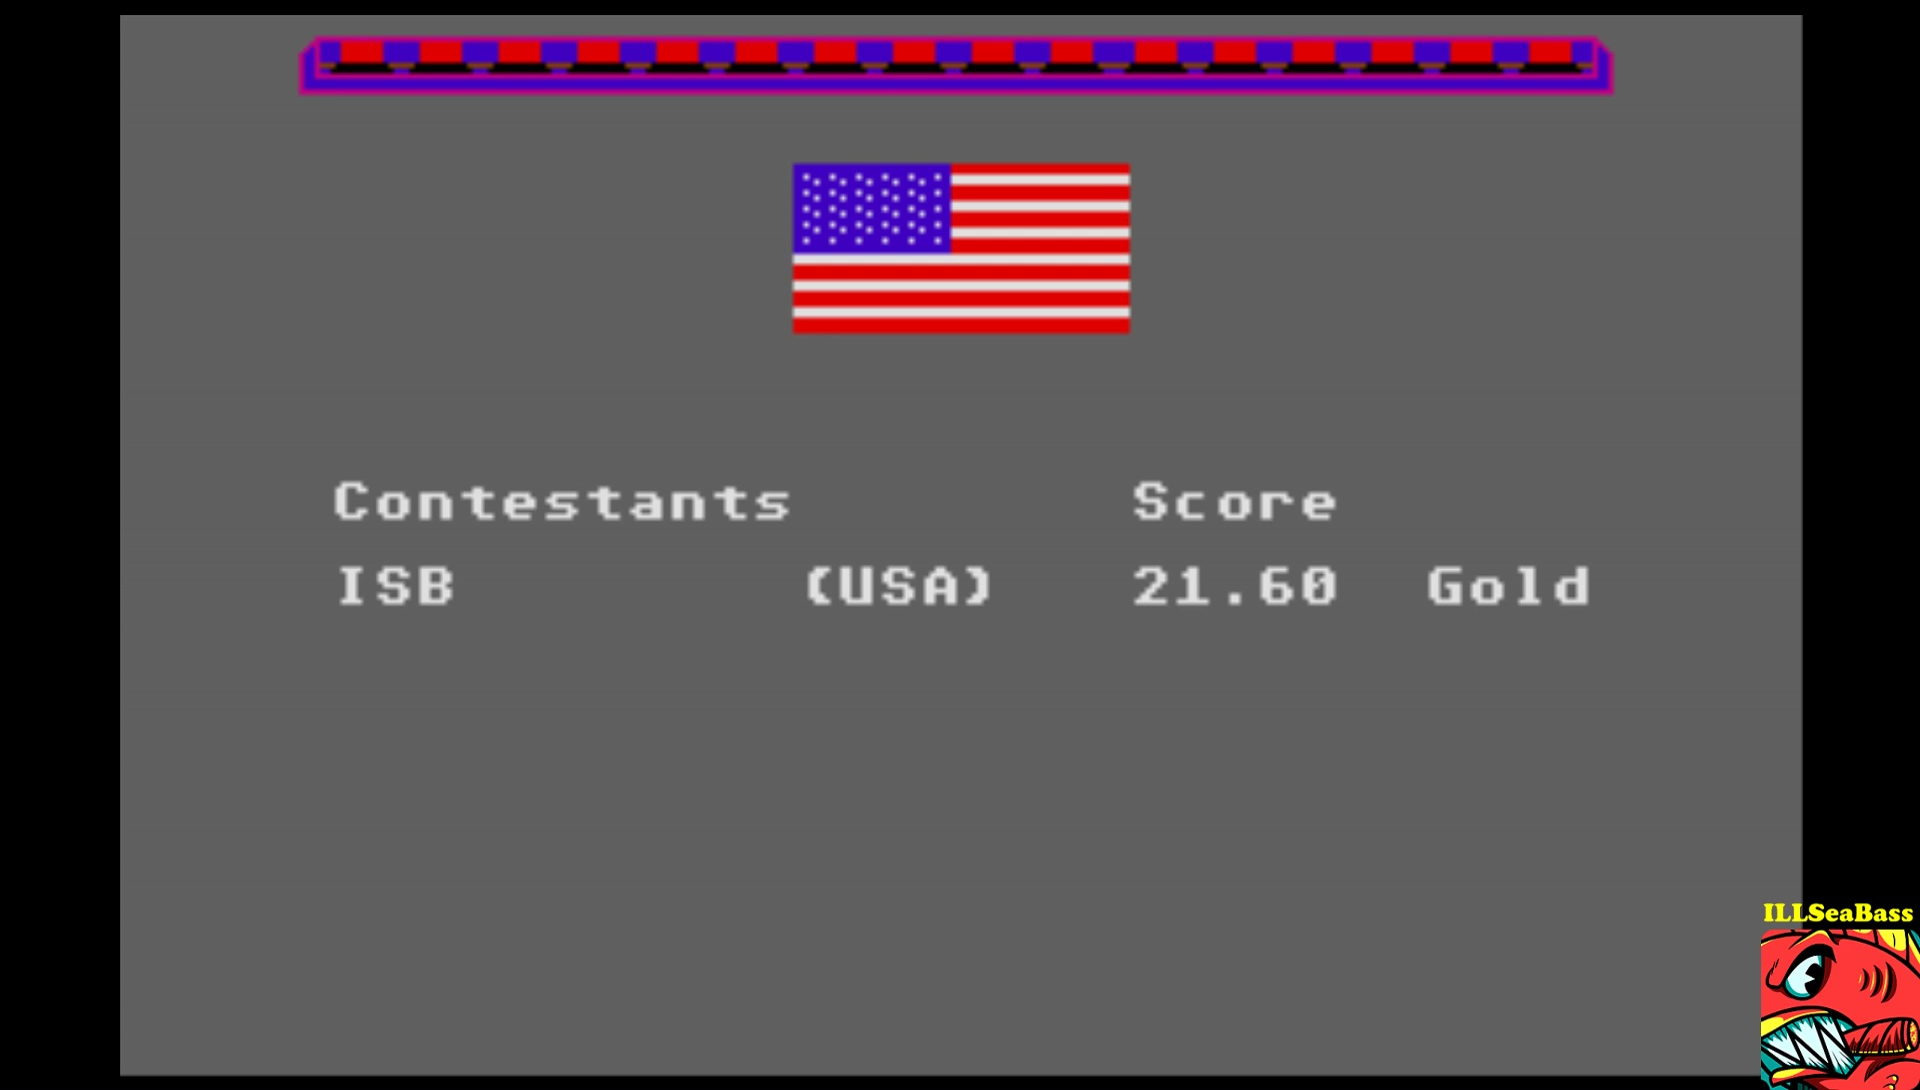 ILLSeaBass: Winter Games: Bobsled (Atari ST Emulated) 0:00:21.6 points on 2017-03-04 16:26:23